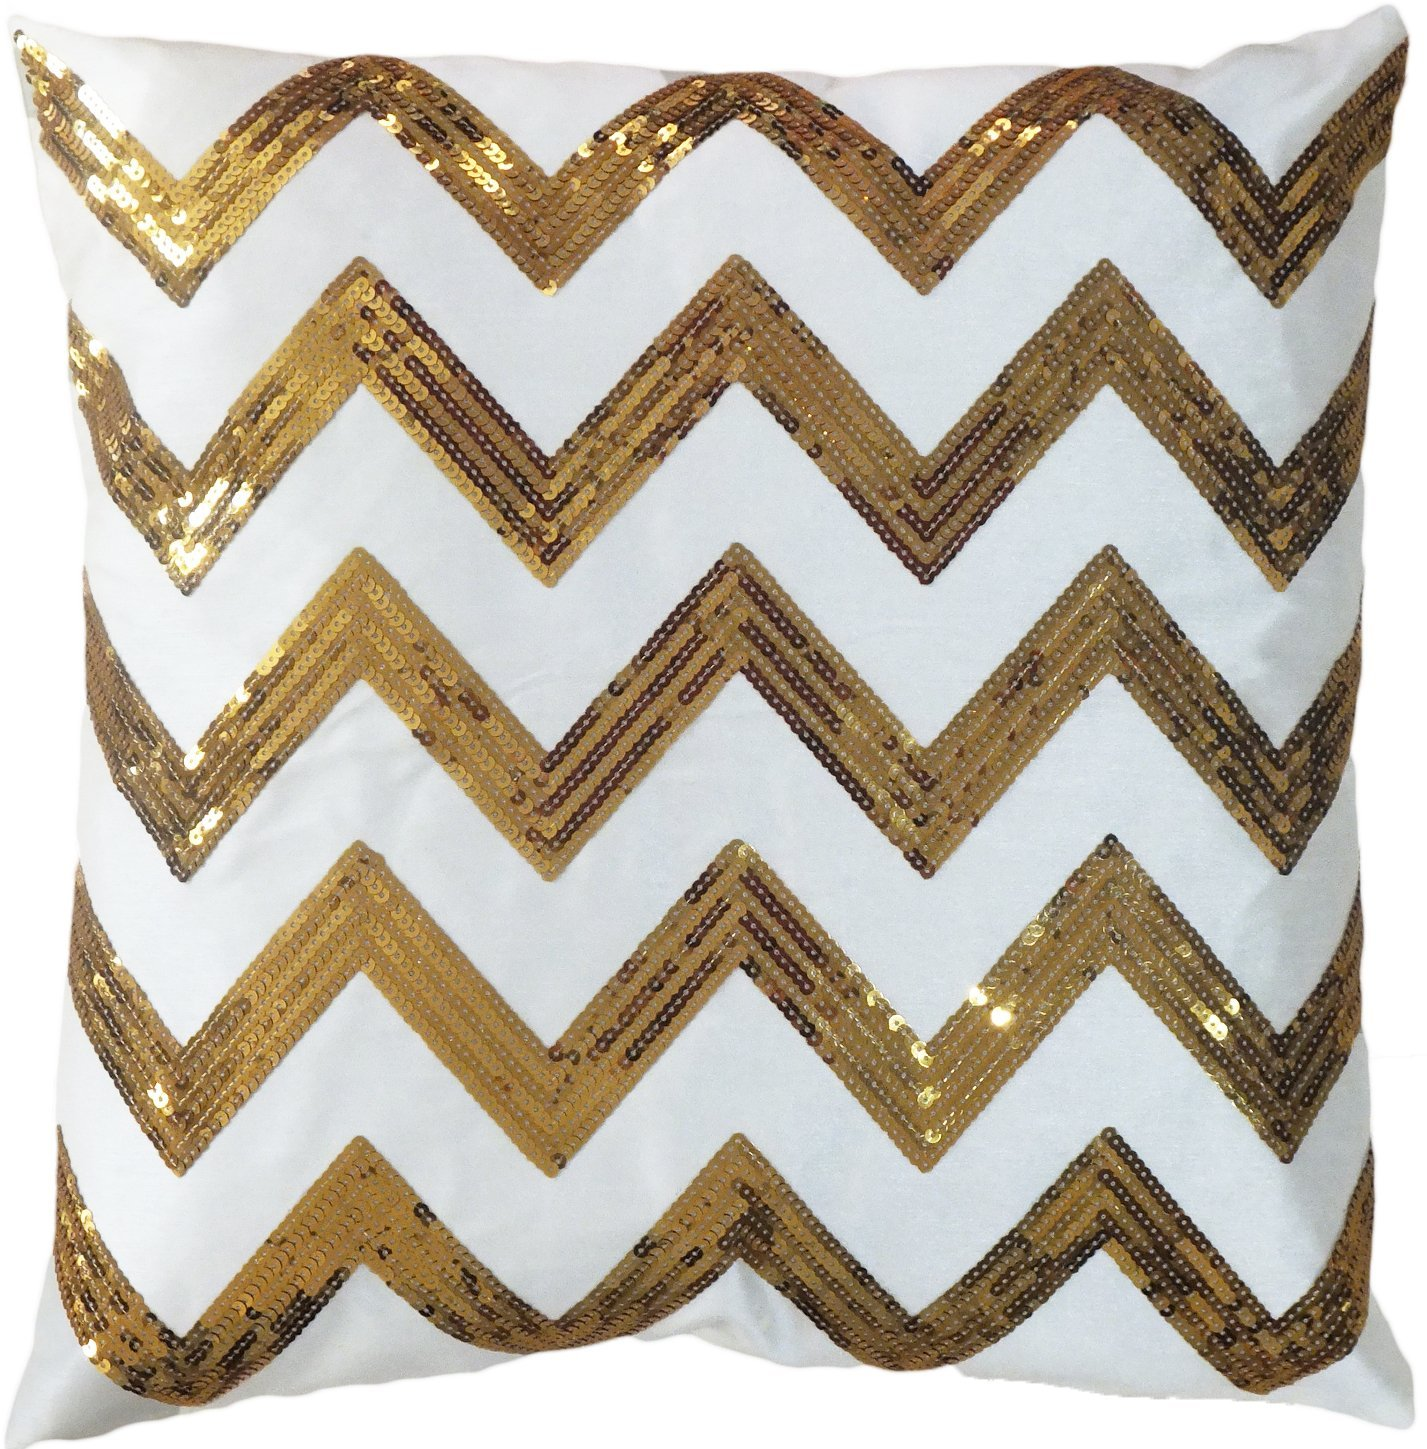 Pottery Barn Throw Pillows | Fall Throw Pillows | Gold Throw Pillows